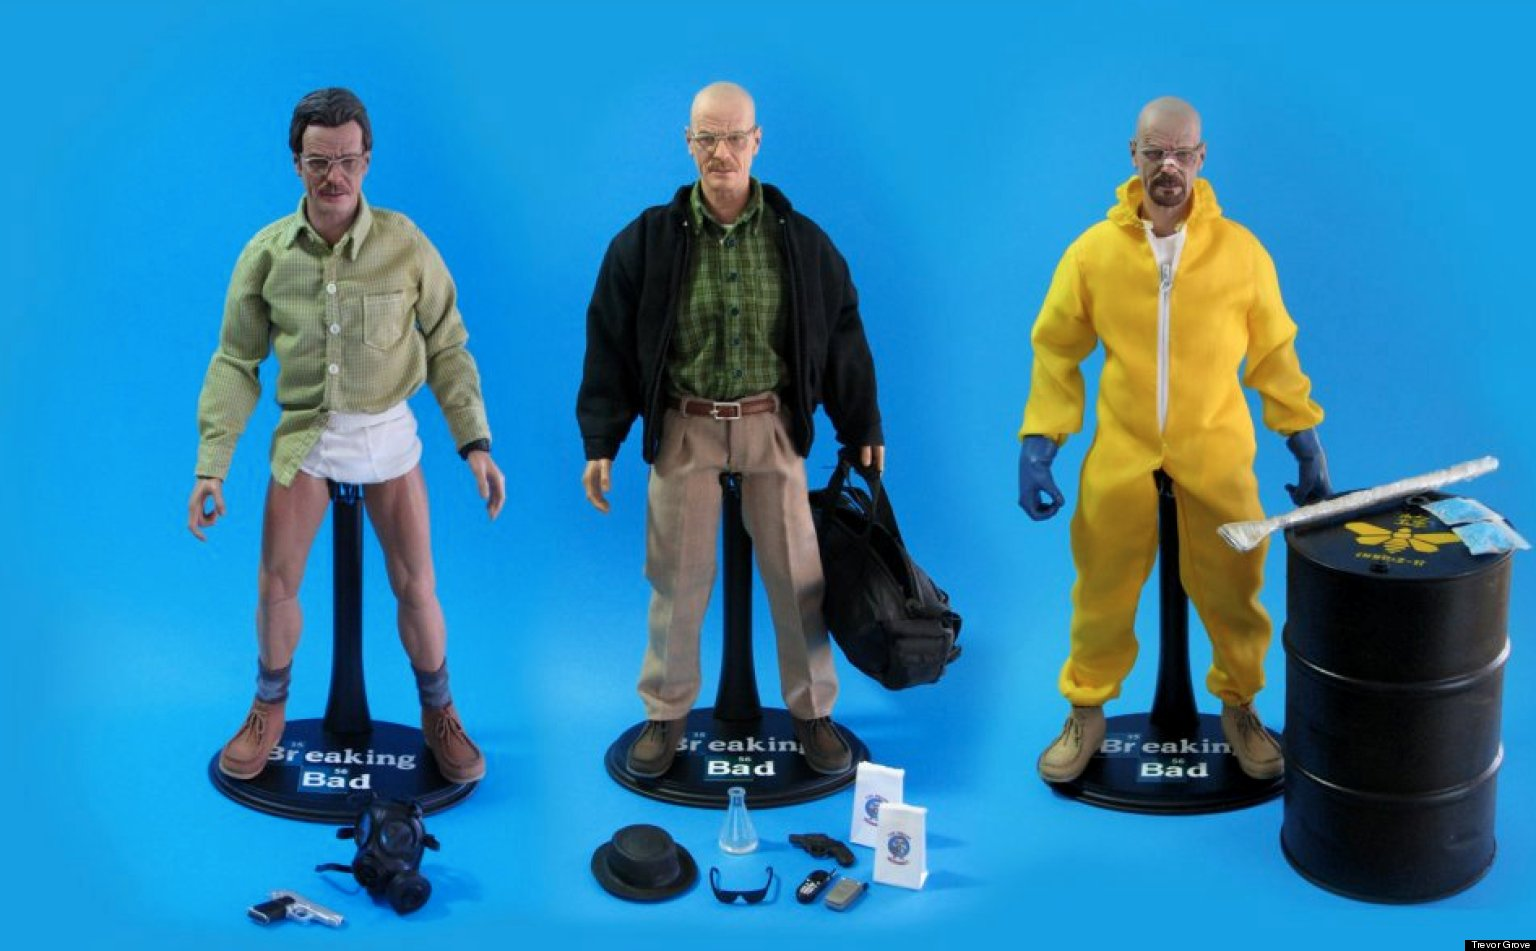 BREAKING-BAD-FIGURES